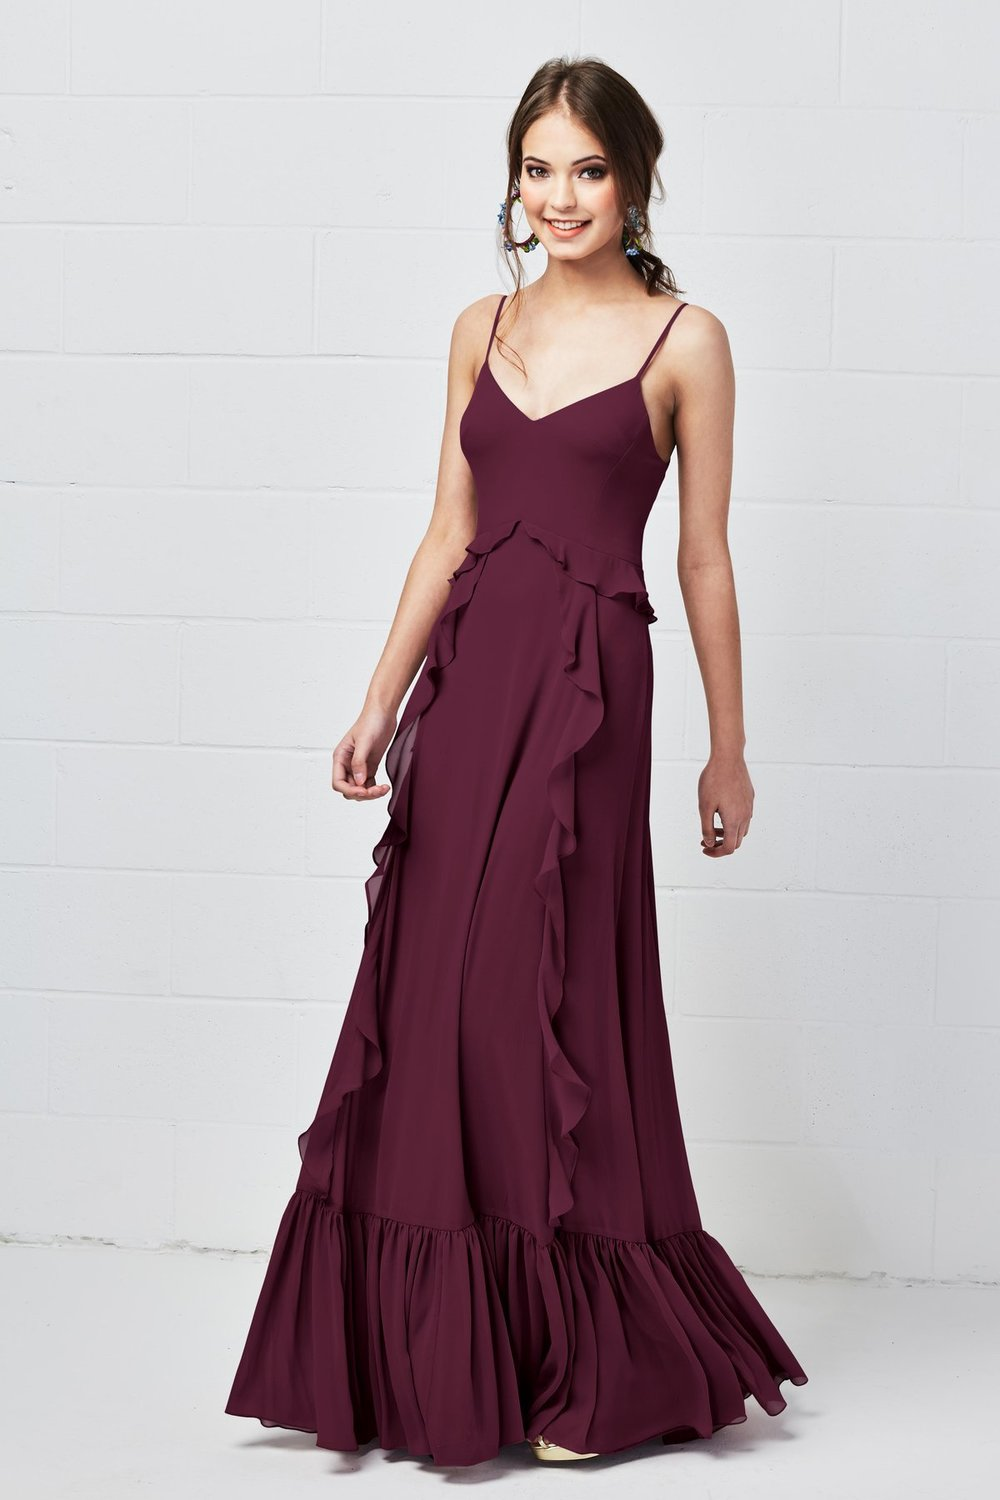 Watters Bridesmaids Style 5500 Darcie in Wine burgundy color luxe chiffon at Gilded Social